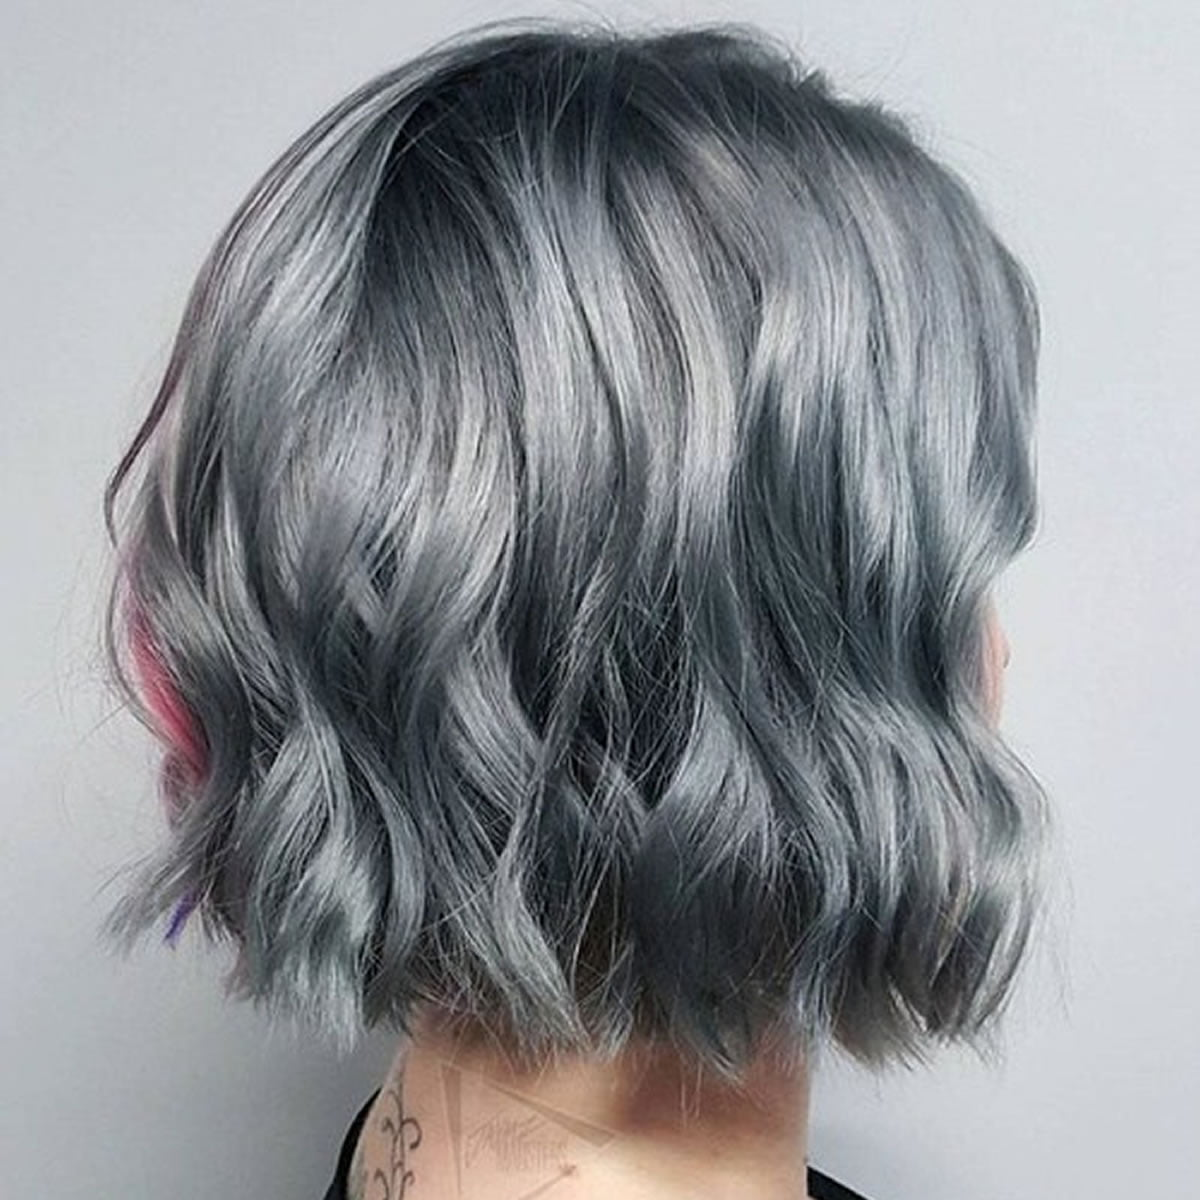 Grey Hair Trend - 20 Glamorous Hairstyles for Women 2018 | Page 4 of 4